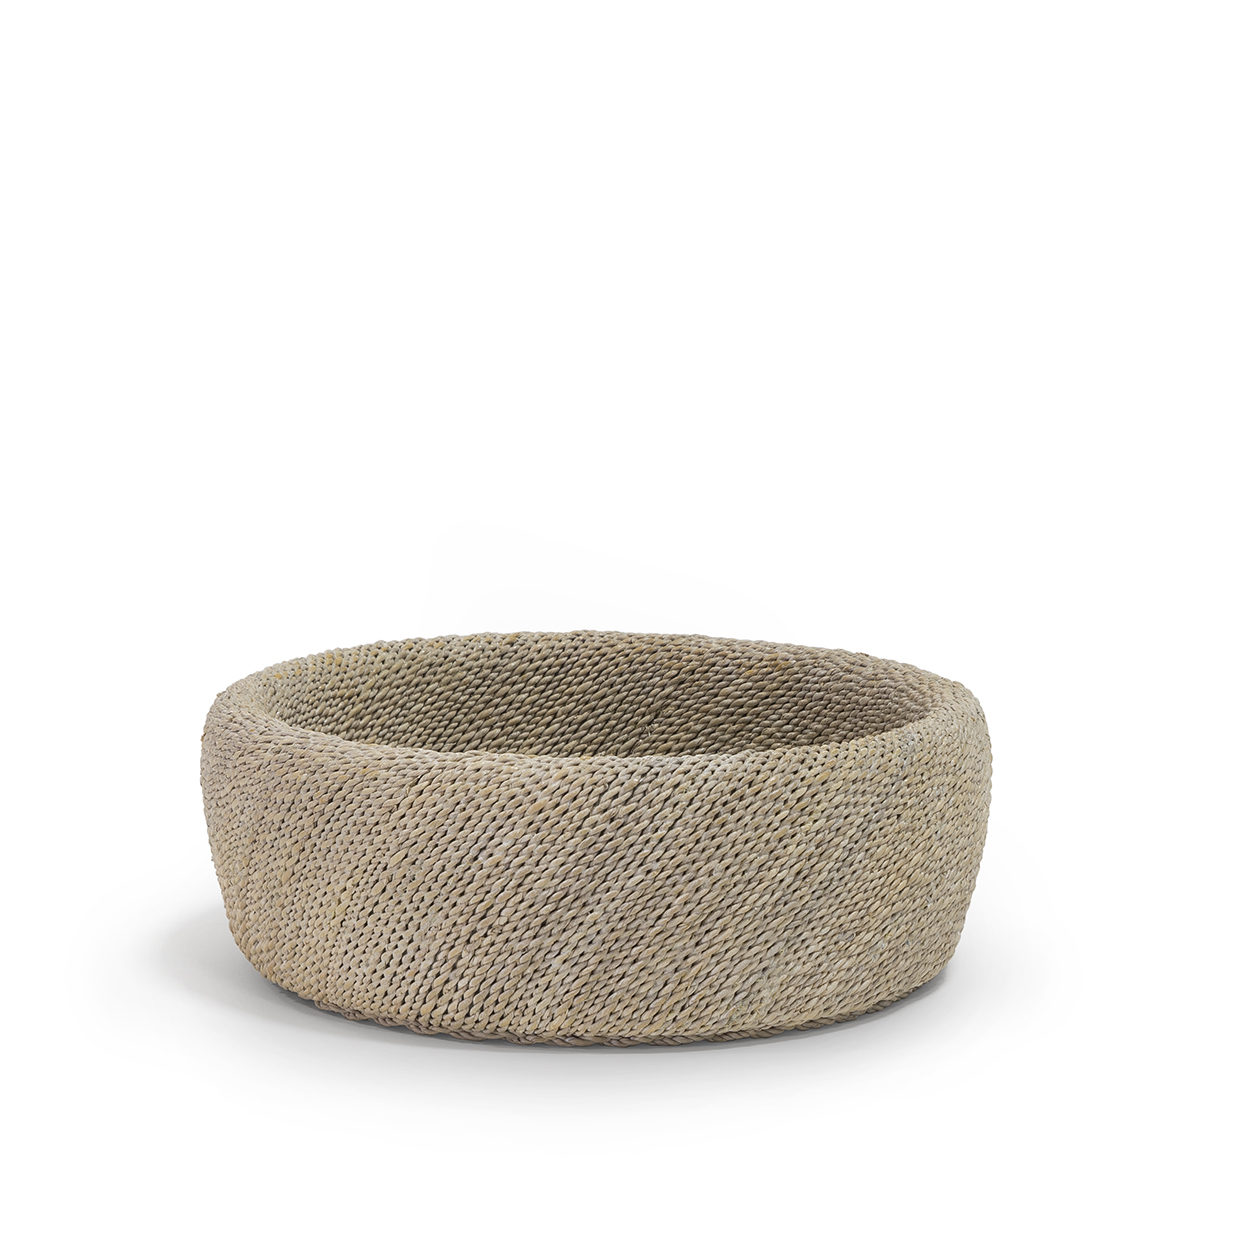 Small Woven Rope Bowl   13dx7h  P302805